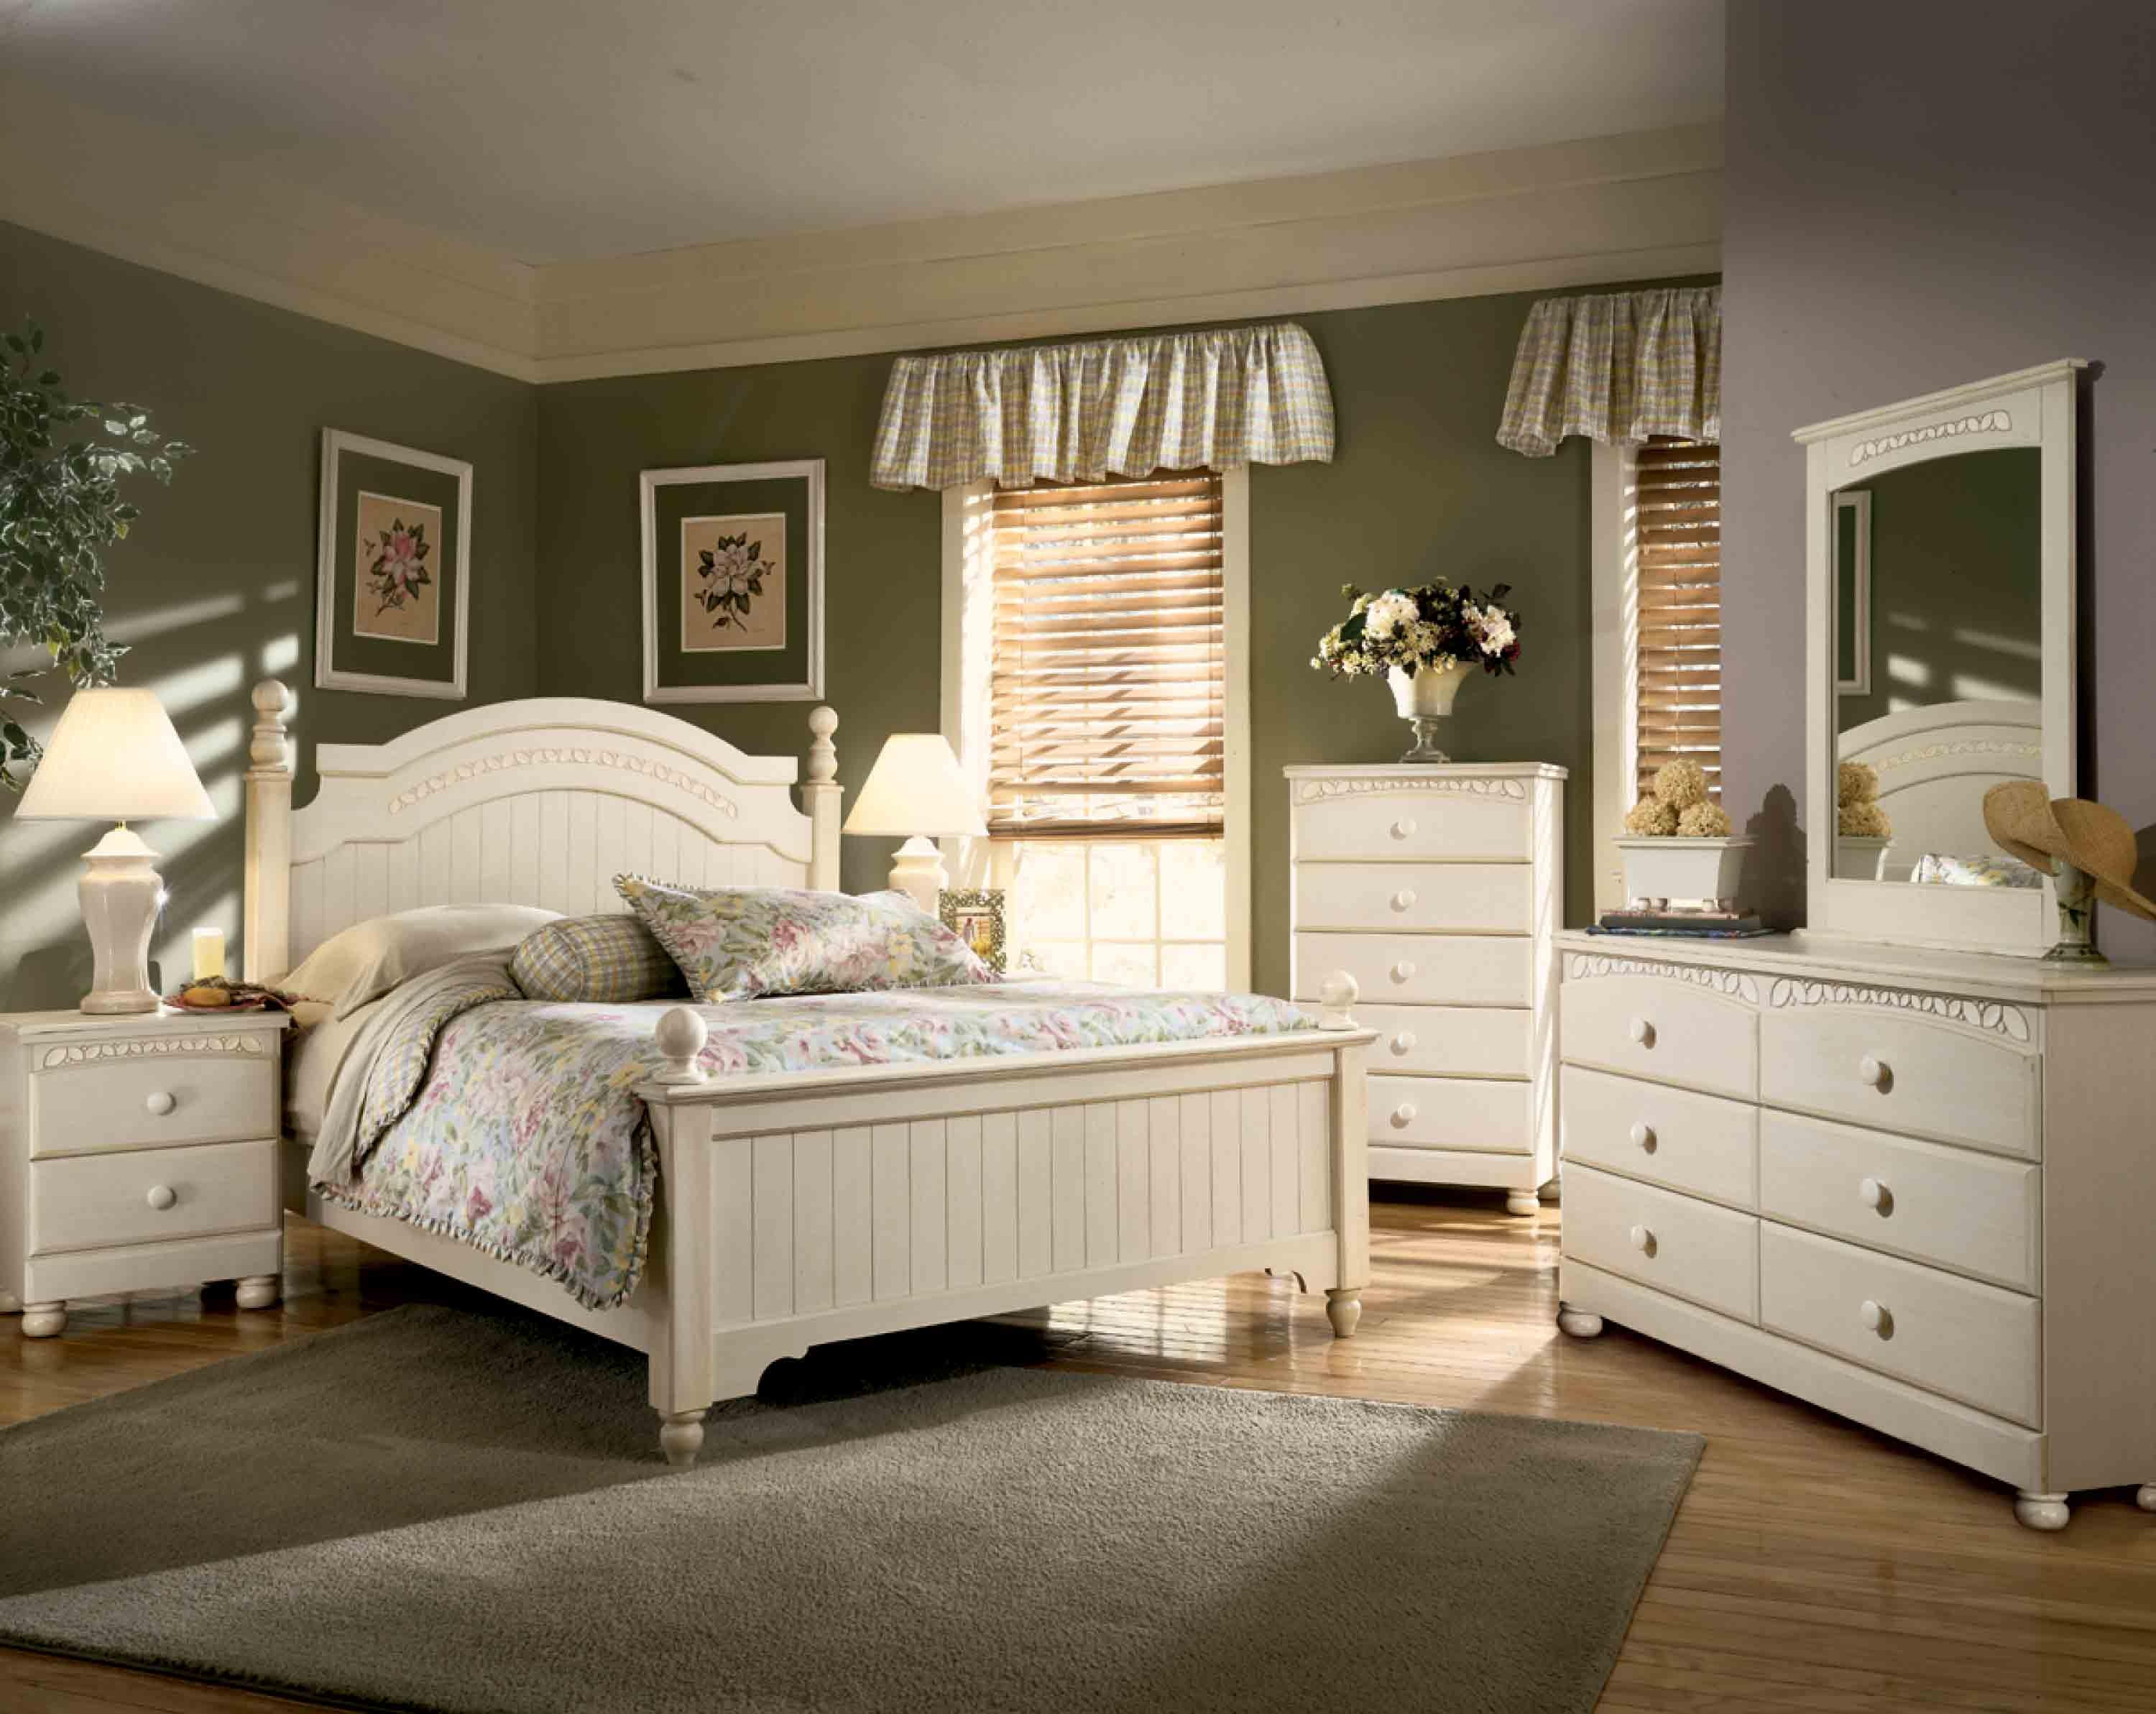 Furniture in brooklyn at Cottage retreat collection bedroom furniture